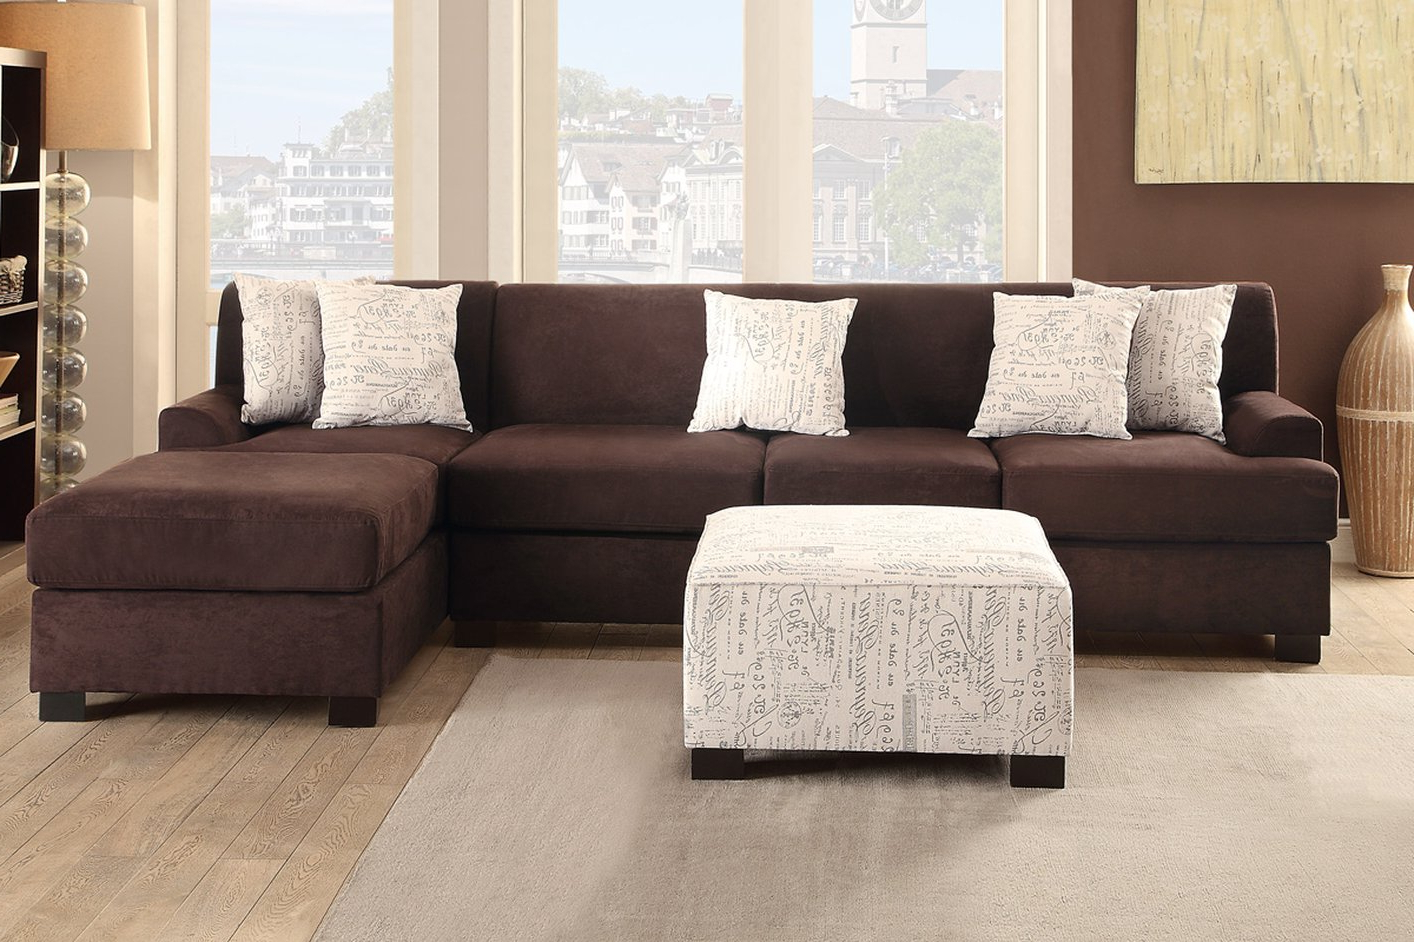 Top Sectional With 2 Chaise Lounges &yz44 – Roccommunity Pertaining To Famous Arrowmask 2 Piece Sectionals With Laf Chaise (View 12 of 20)